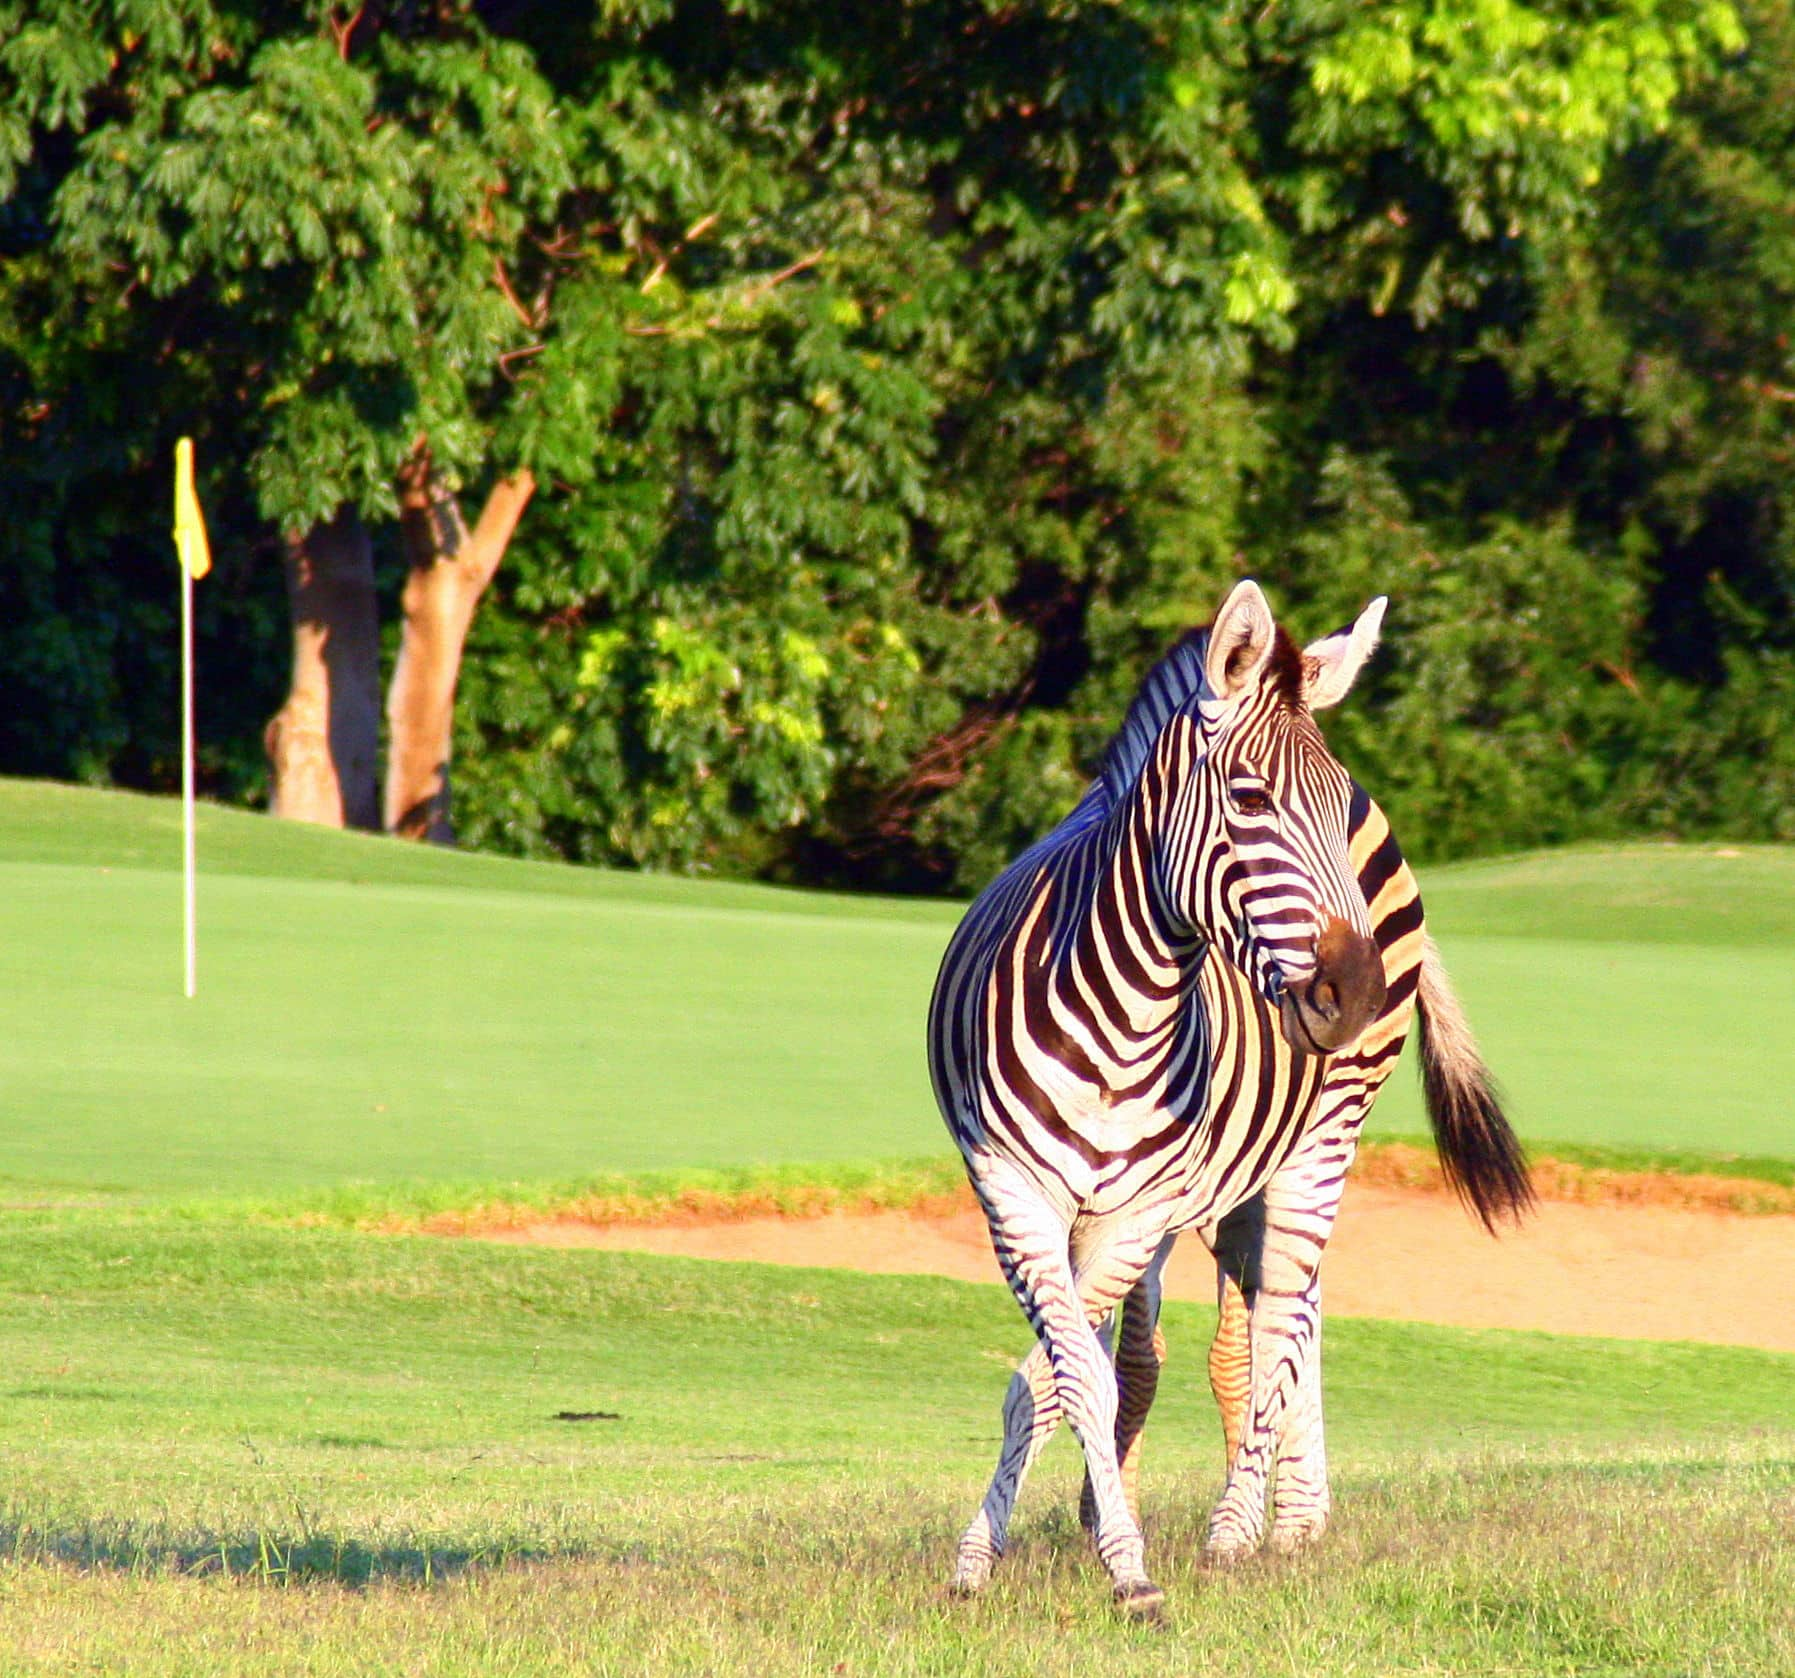 Zebra at Hans Merensky golf course